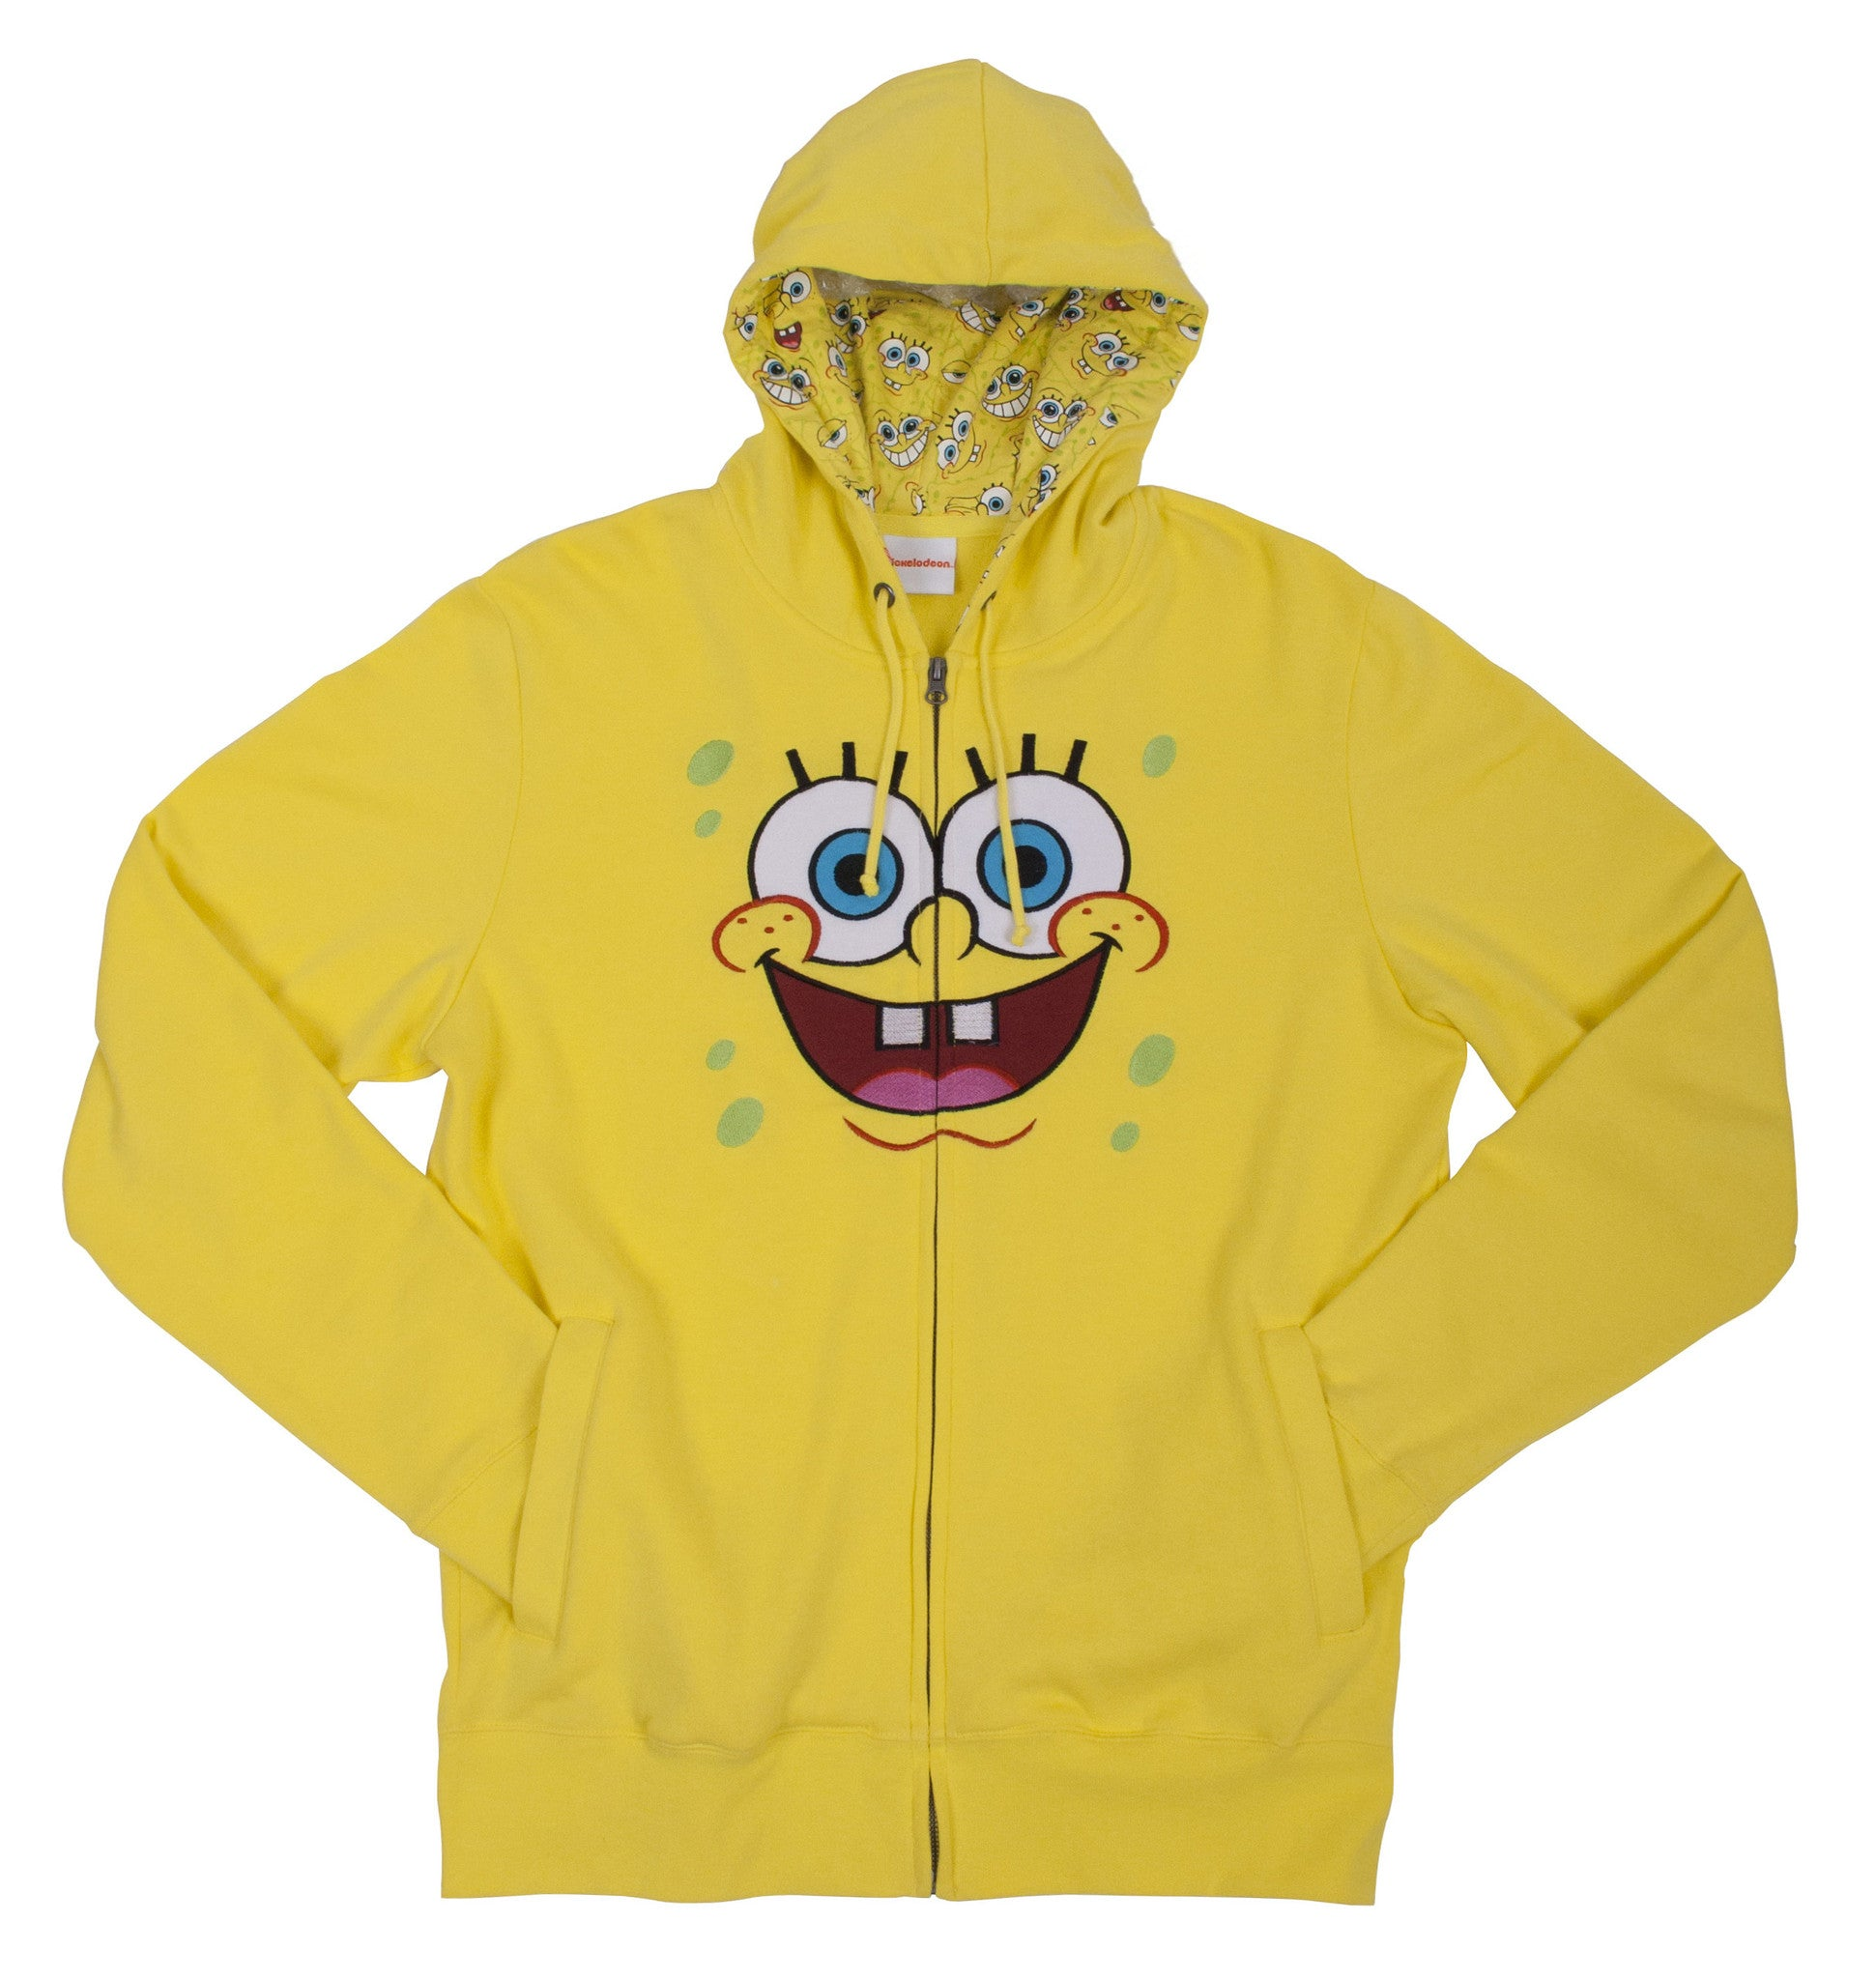 "SpongeBob SquarePants ""Big Face"" Zip up Hoodie - Adult"